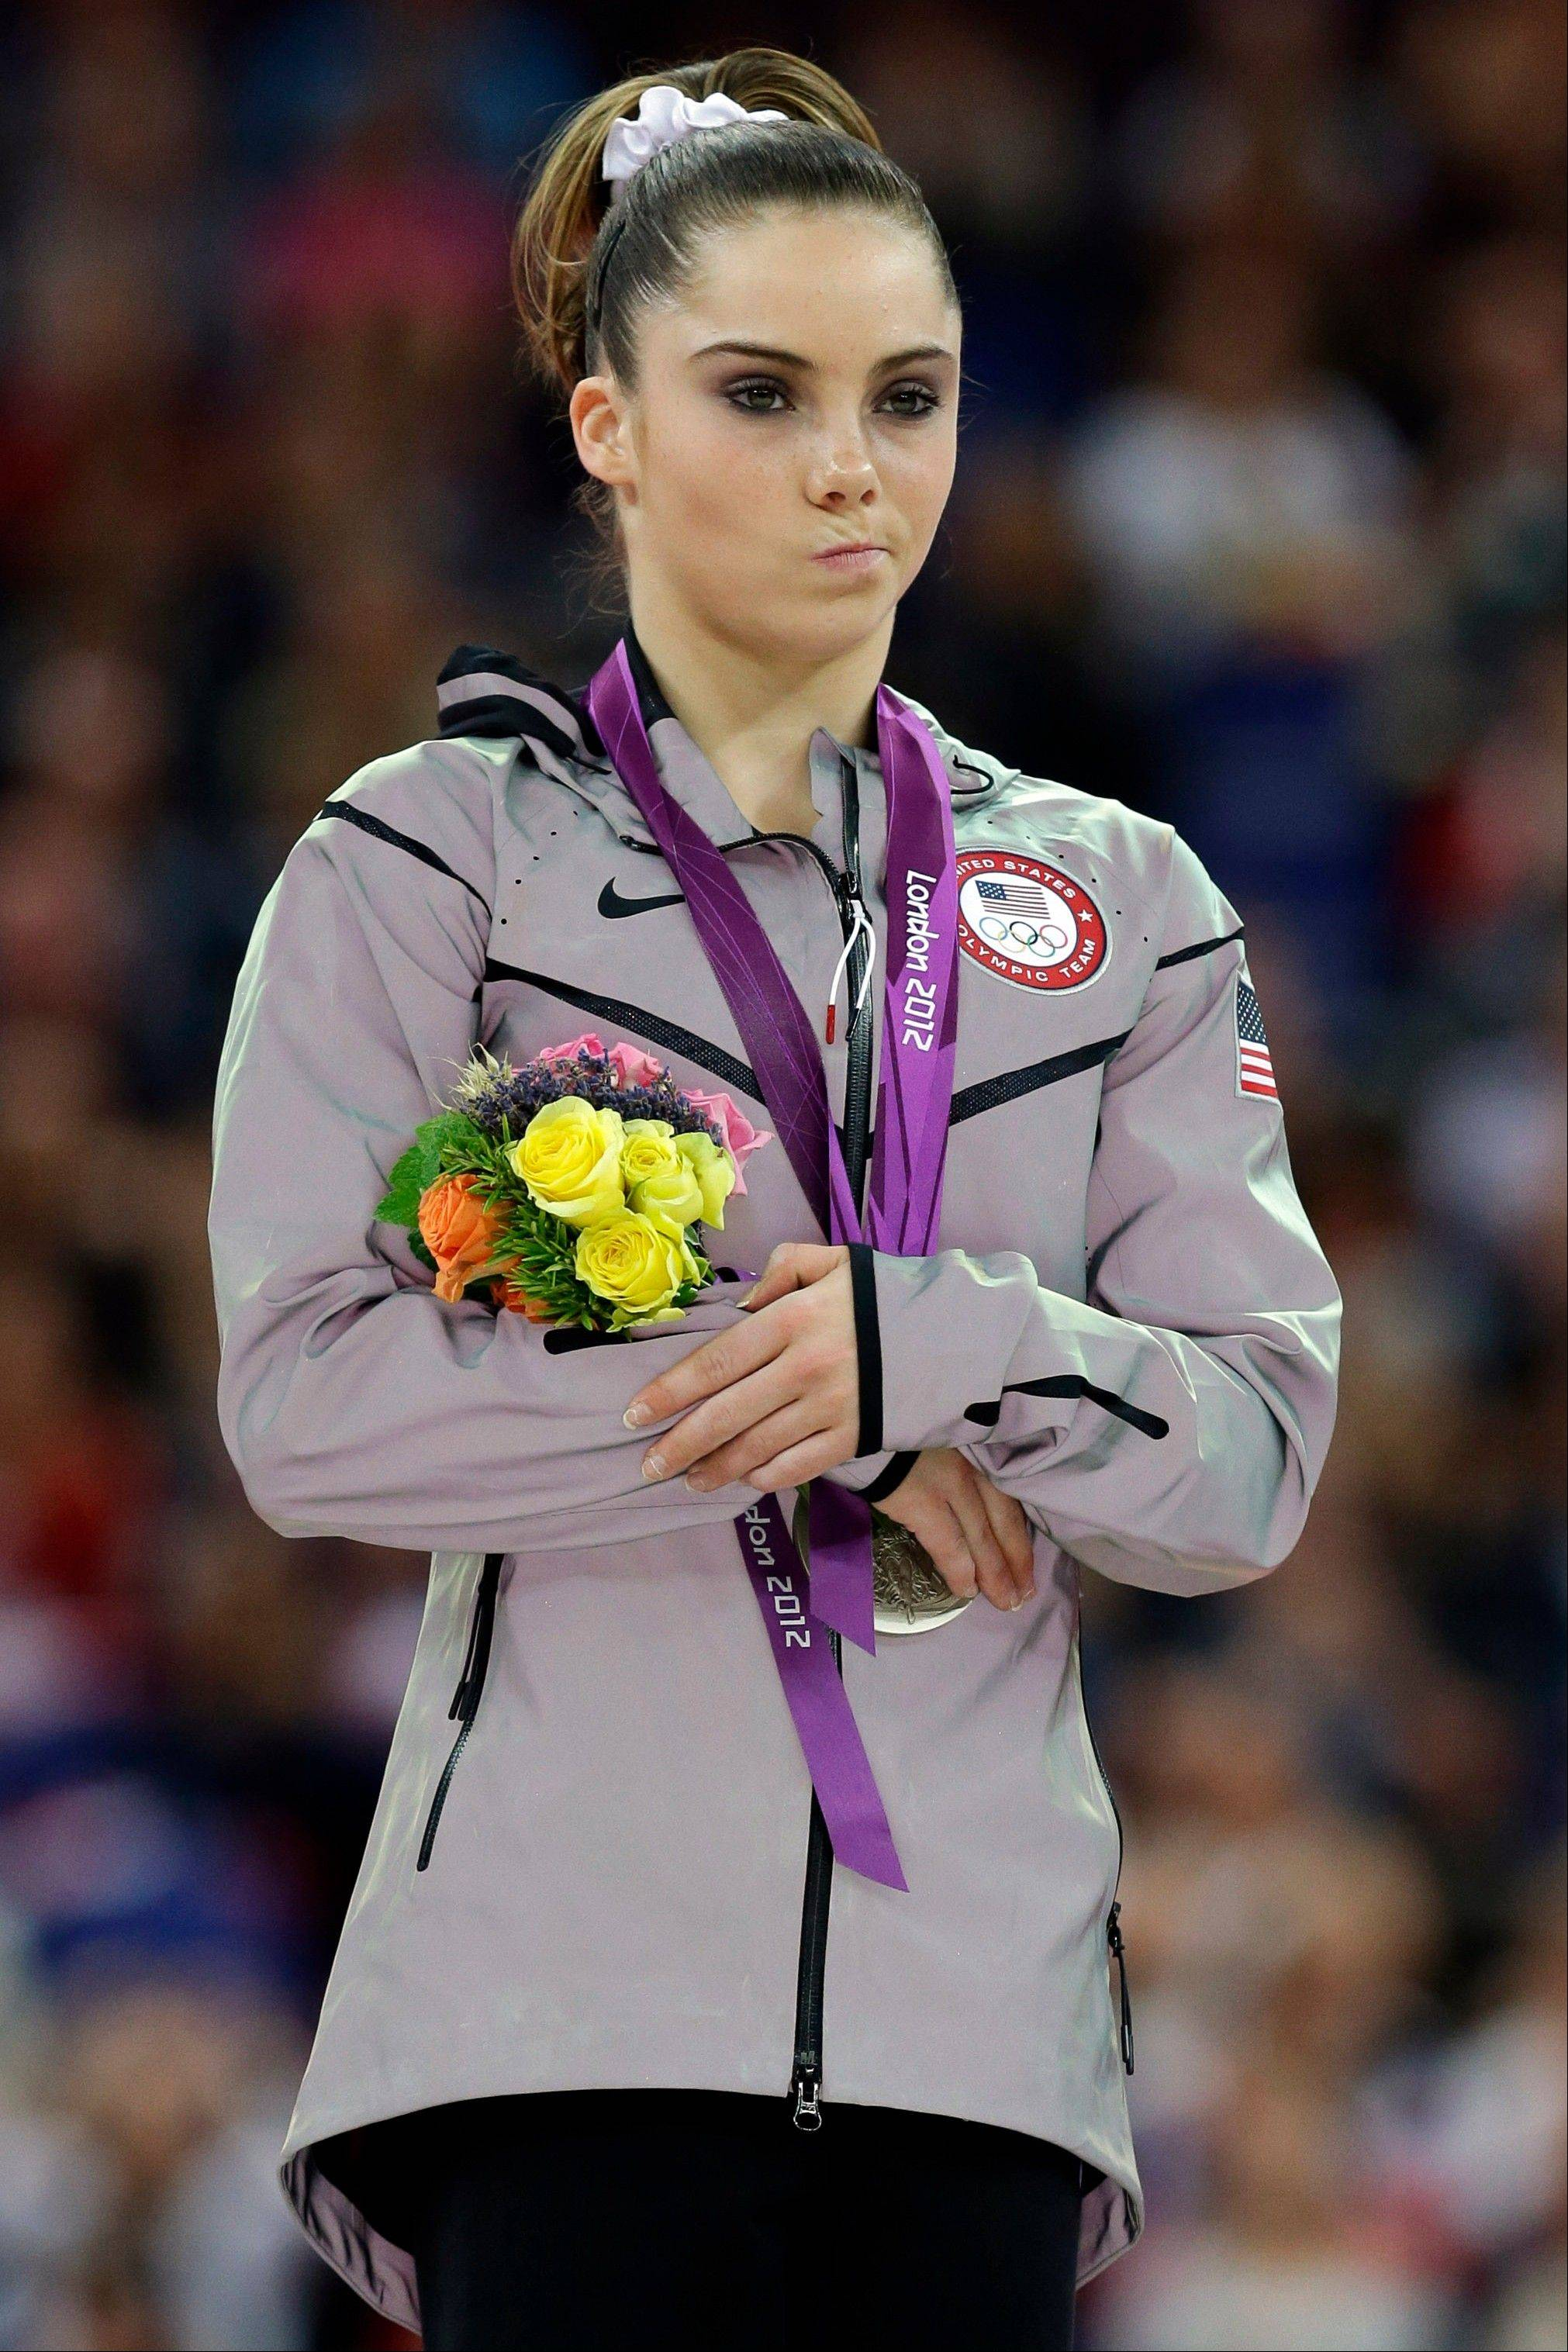 Silver medalist McKayla Maroney may have captured the Best Sports Smirk of 2012, but Bob Frisk collected the Best Sports Quotes from the past year for today�s column.